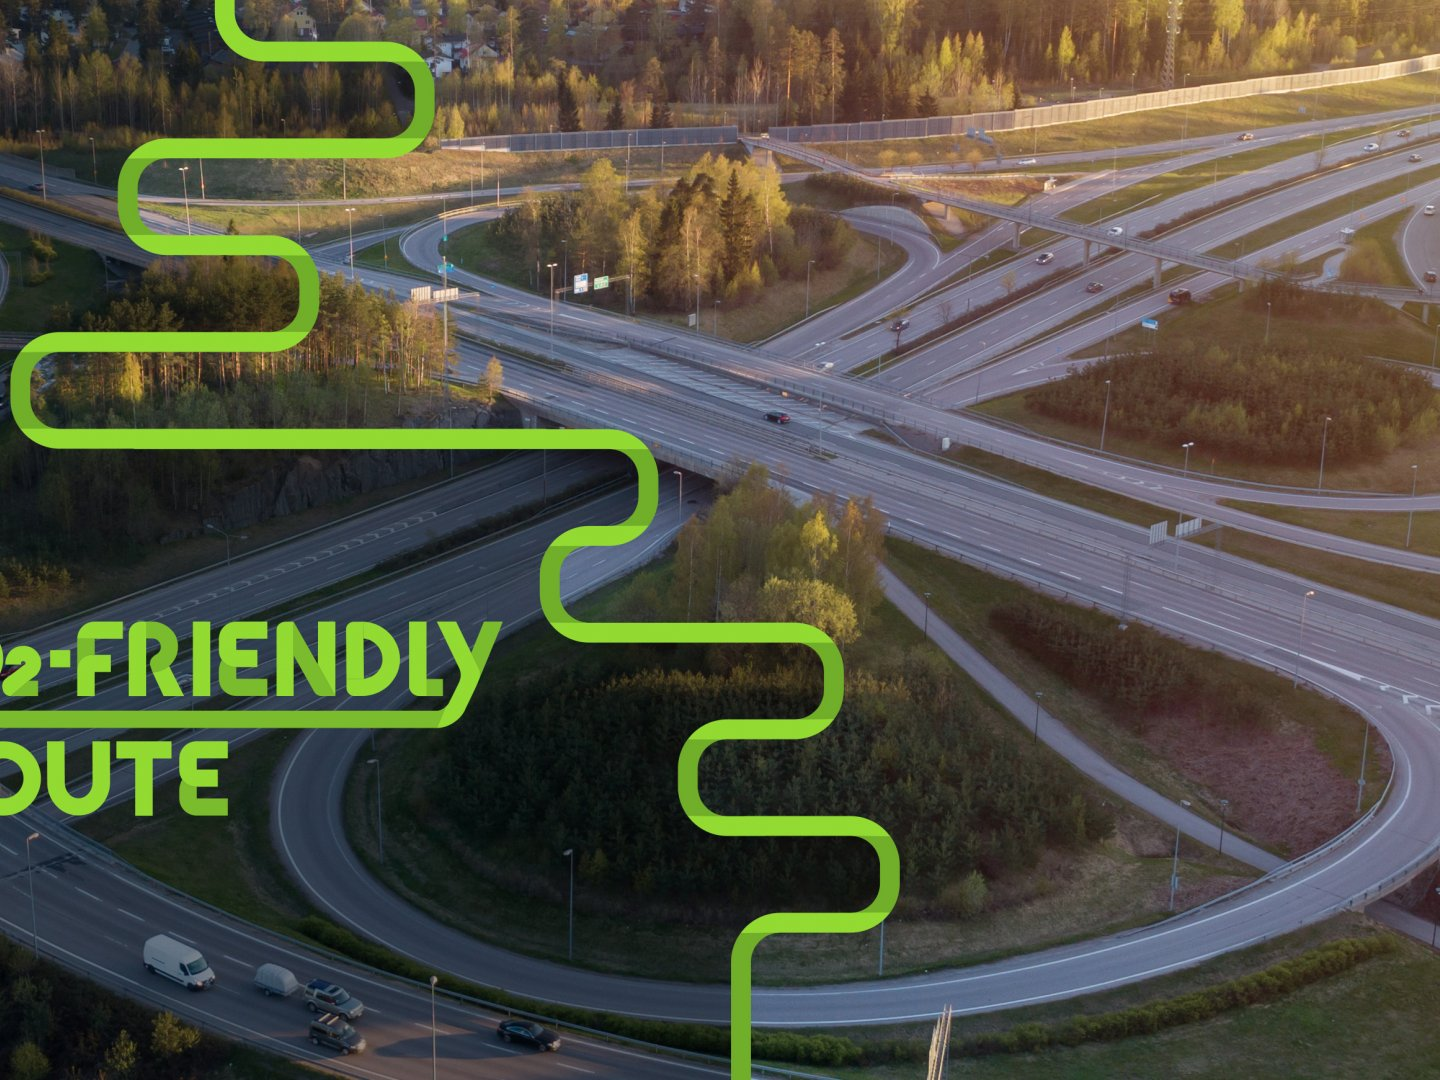 The most CO2-friendly route Thumbnail